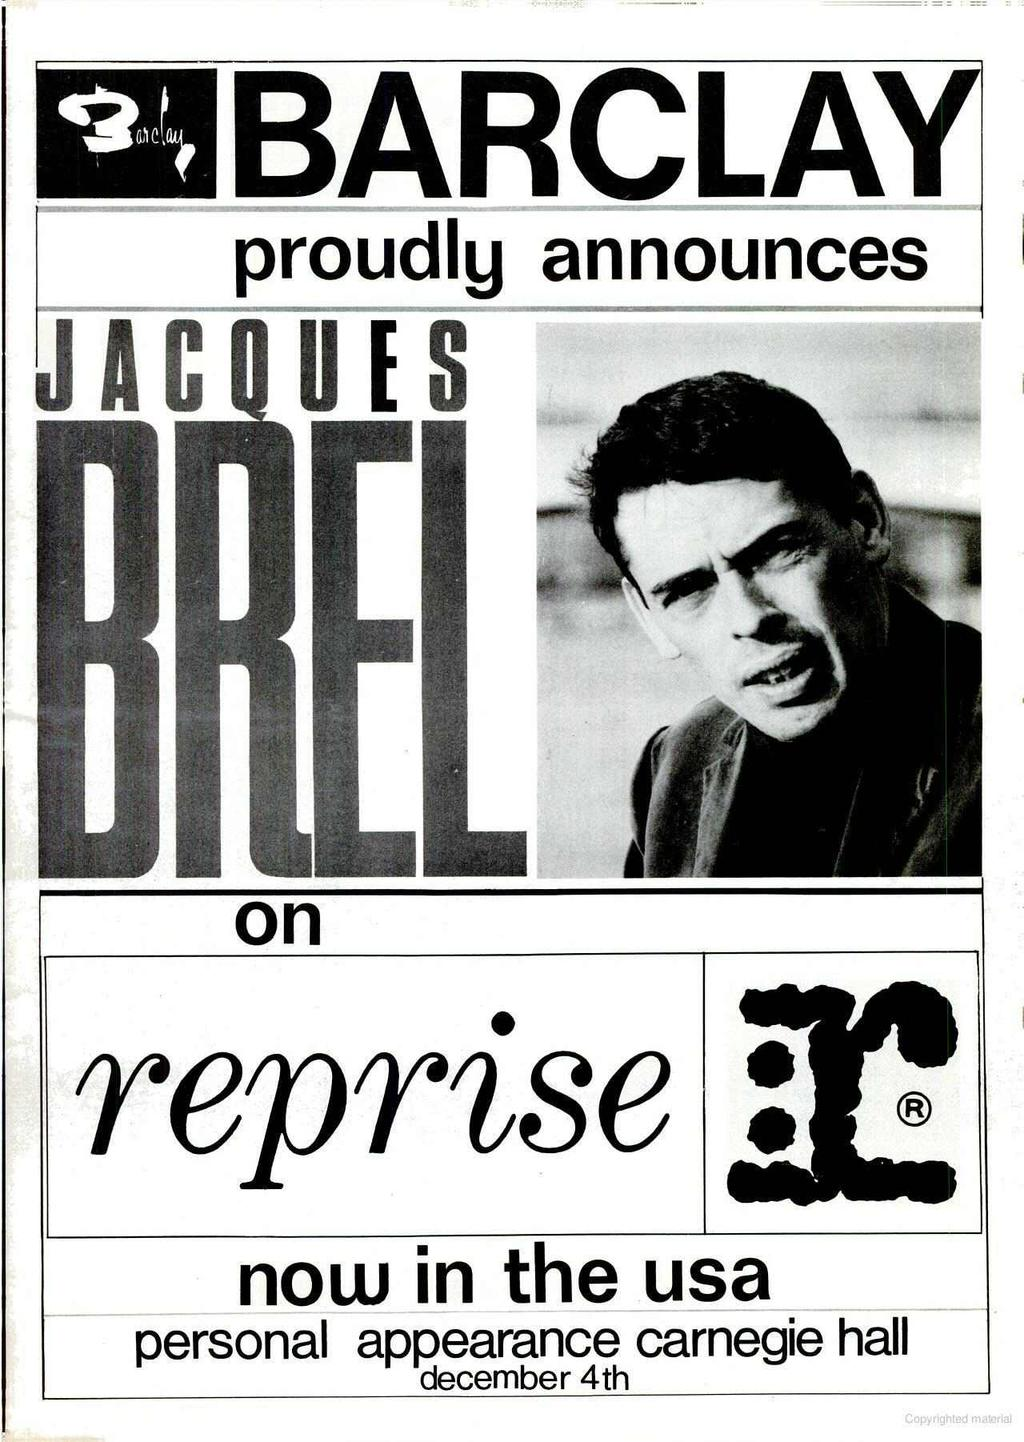 MO 1ARCLAY proudly announces J A Ç on reprise